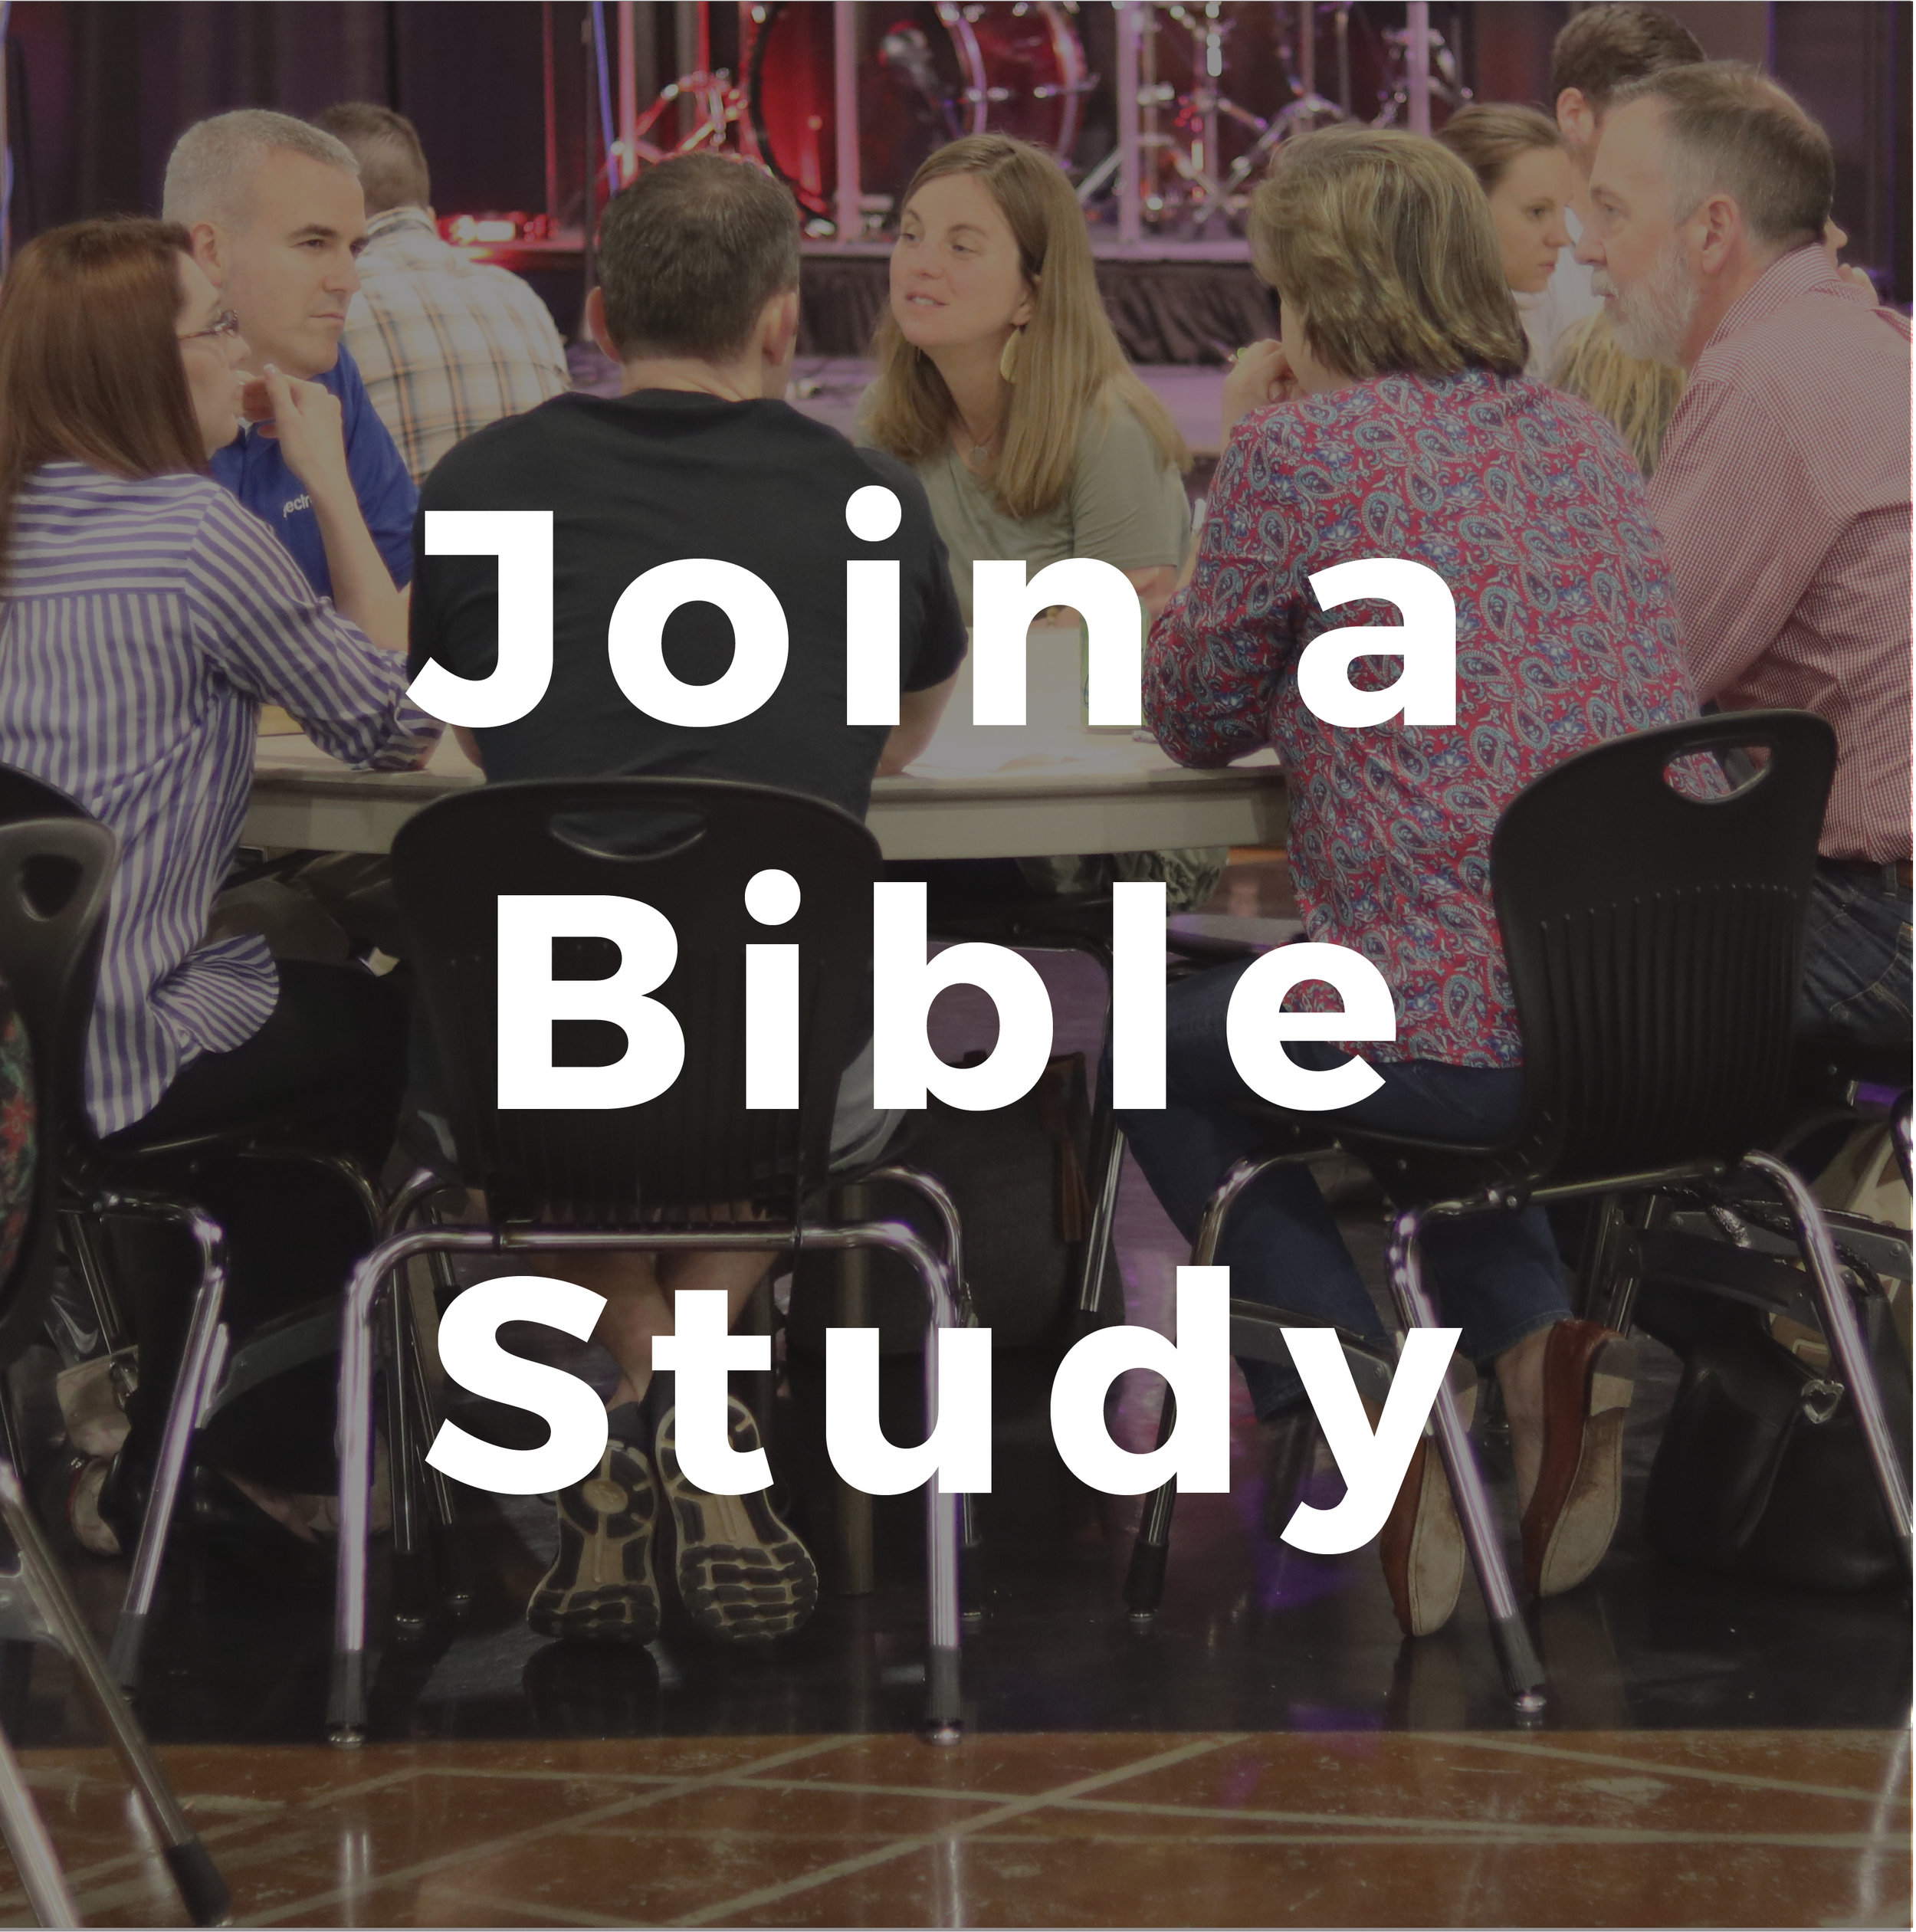 Bible Study Next Step@4x-100.jpg